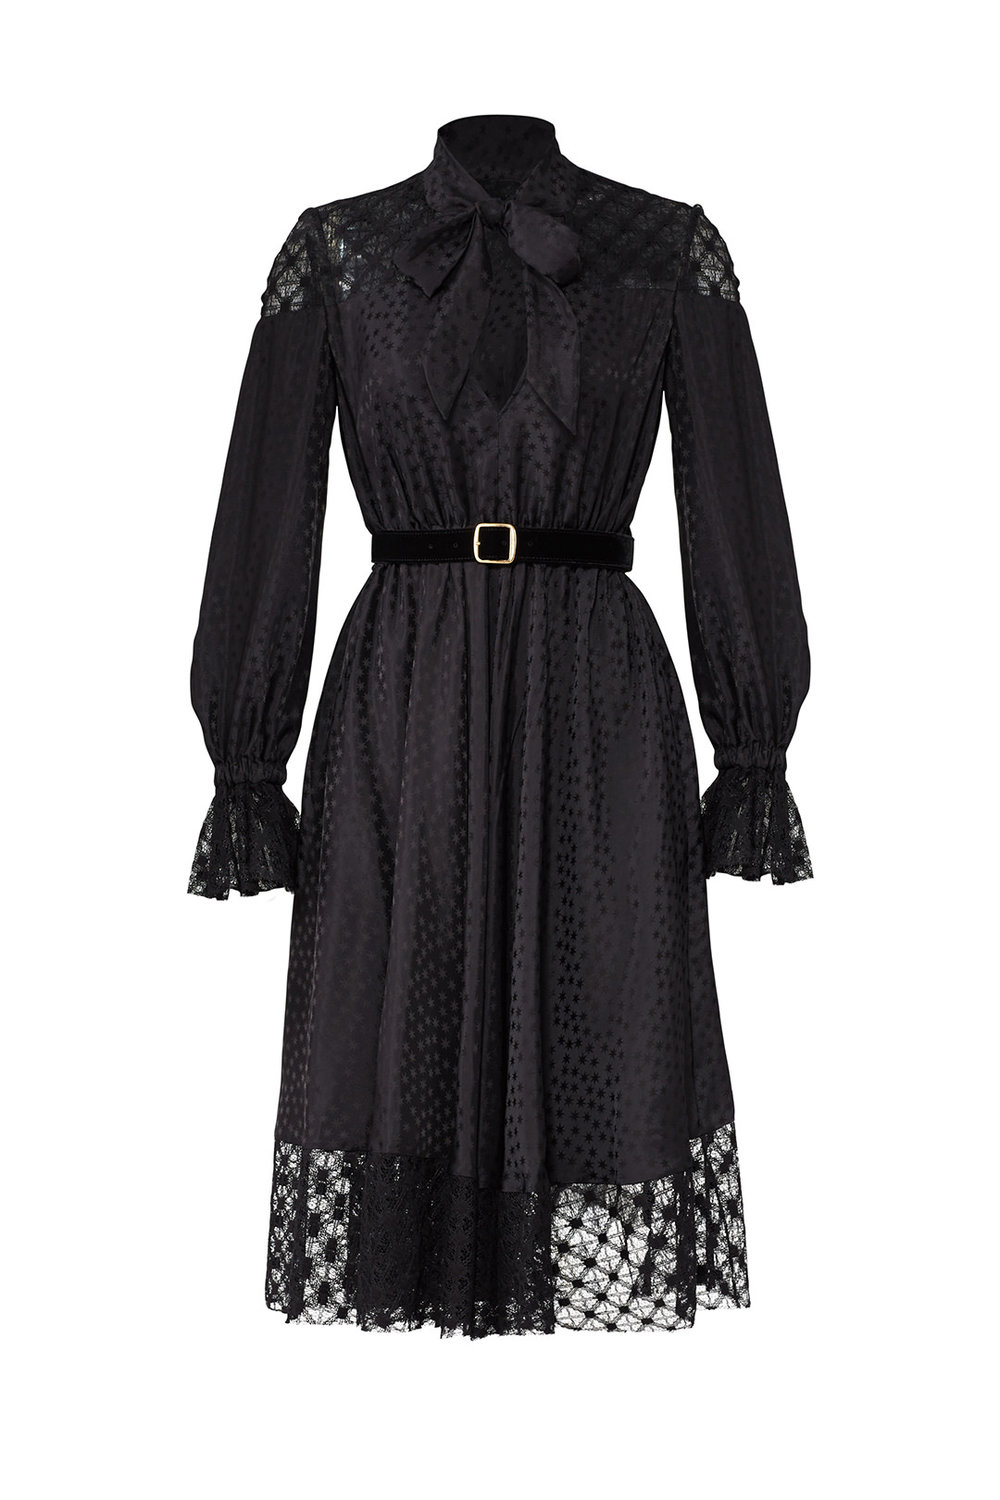 Black Lace Tie Philosophy di Lorenzo Serafini dress from Rent the Runway